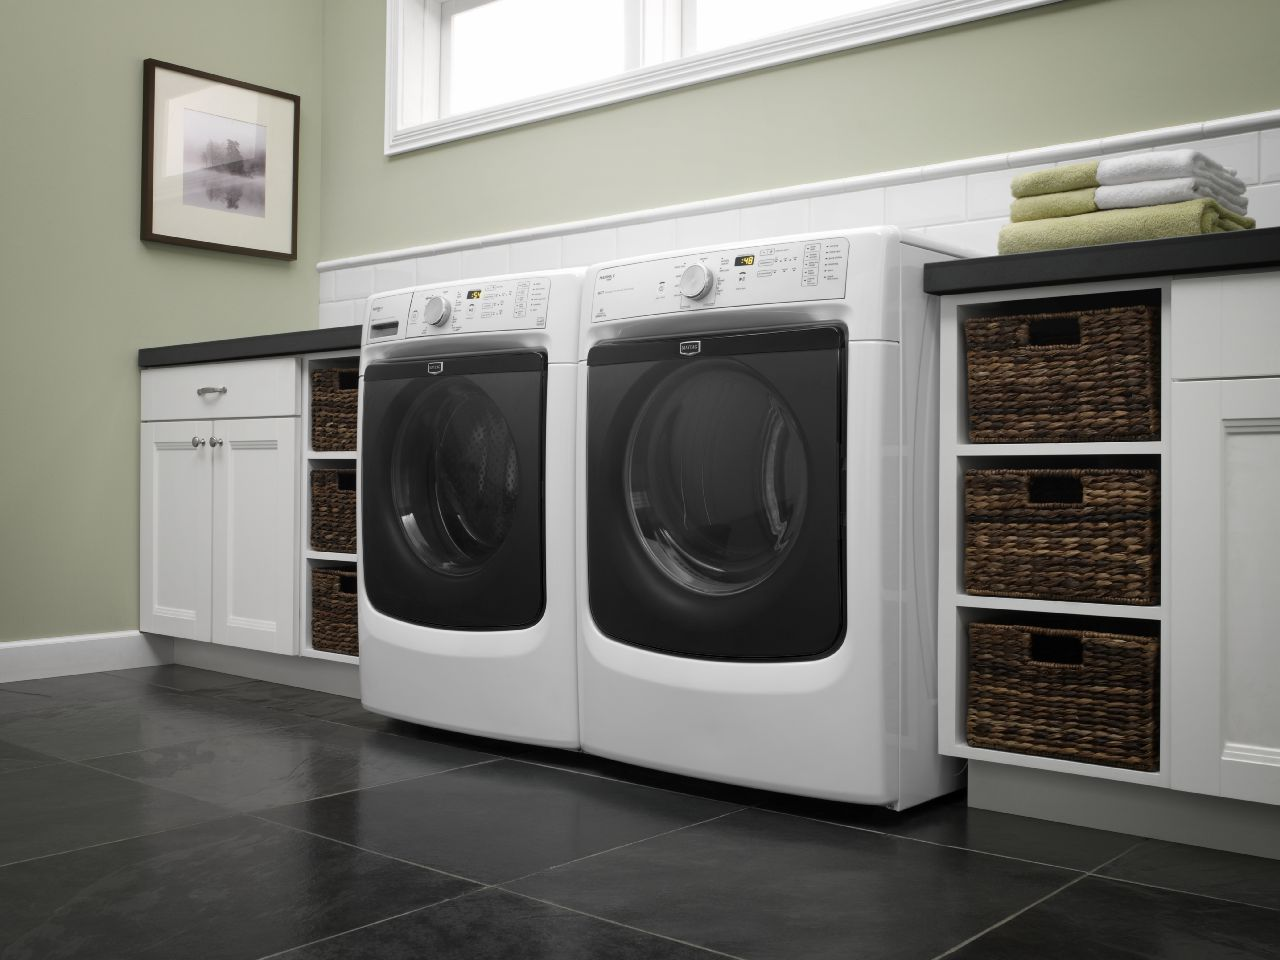 How To Keep A Washing Machine From Vibrating?